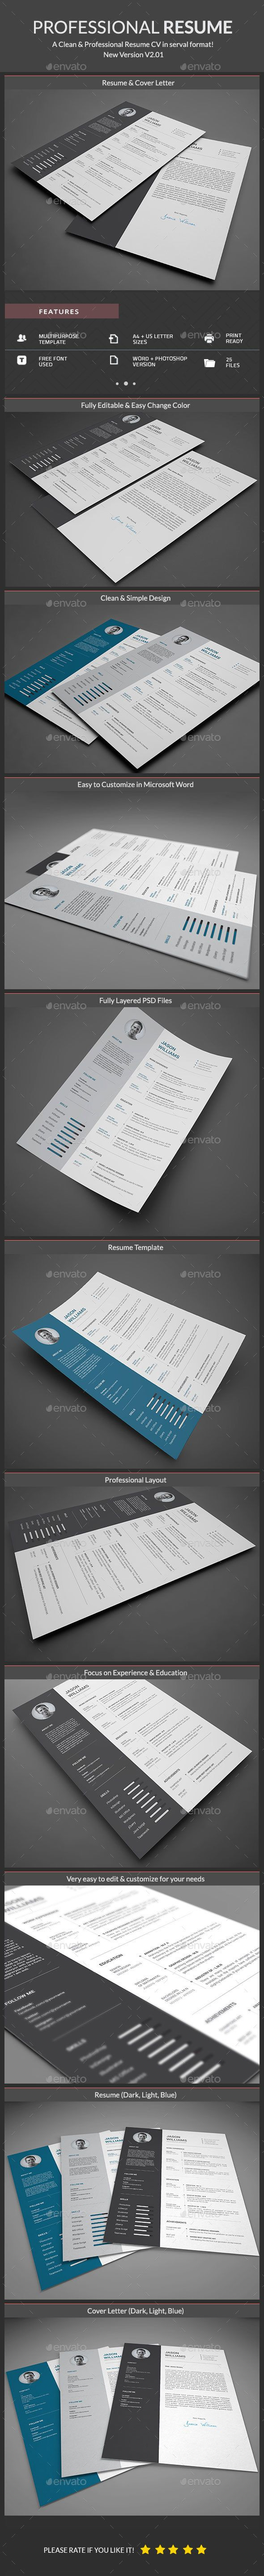 Buy Resume by Elegant Design on GraphicRiver Professional